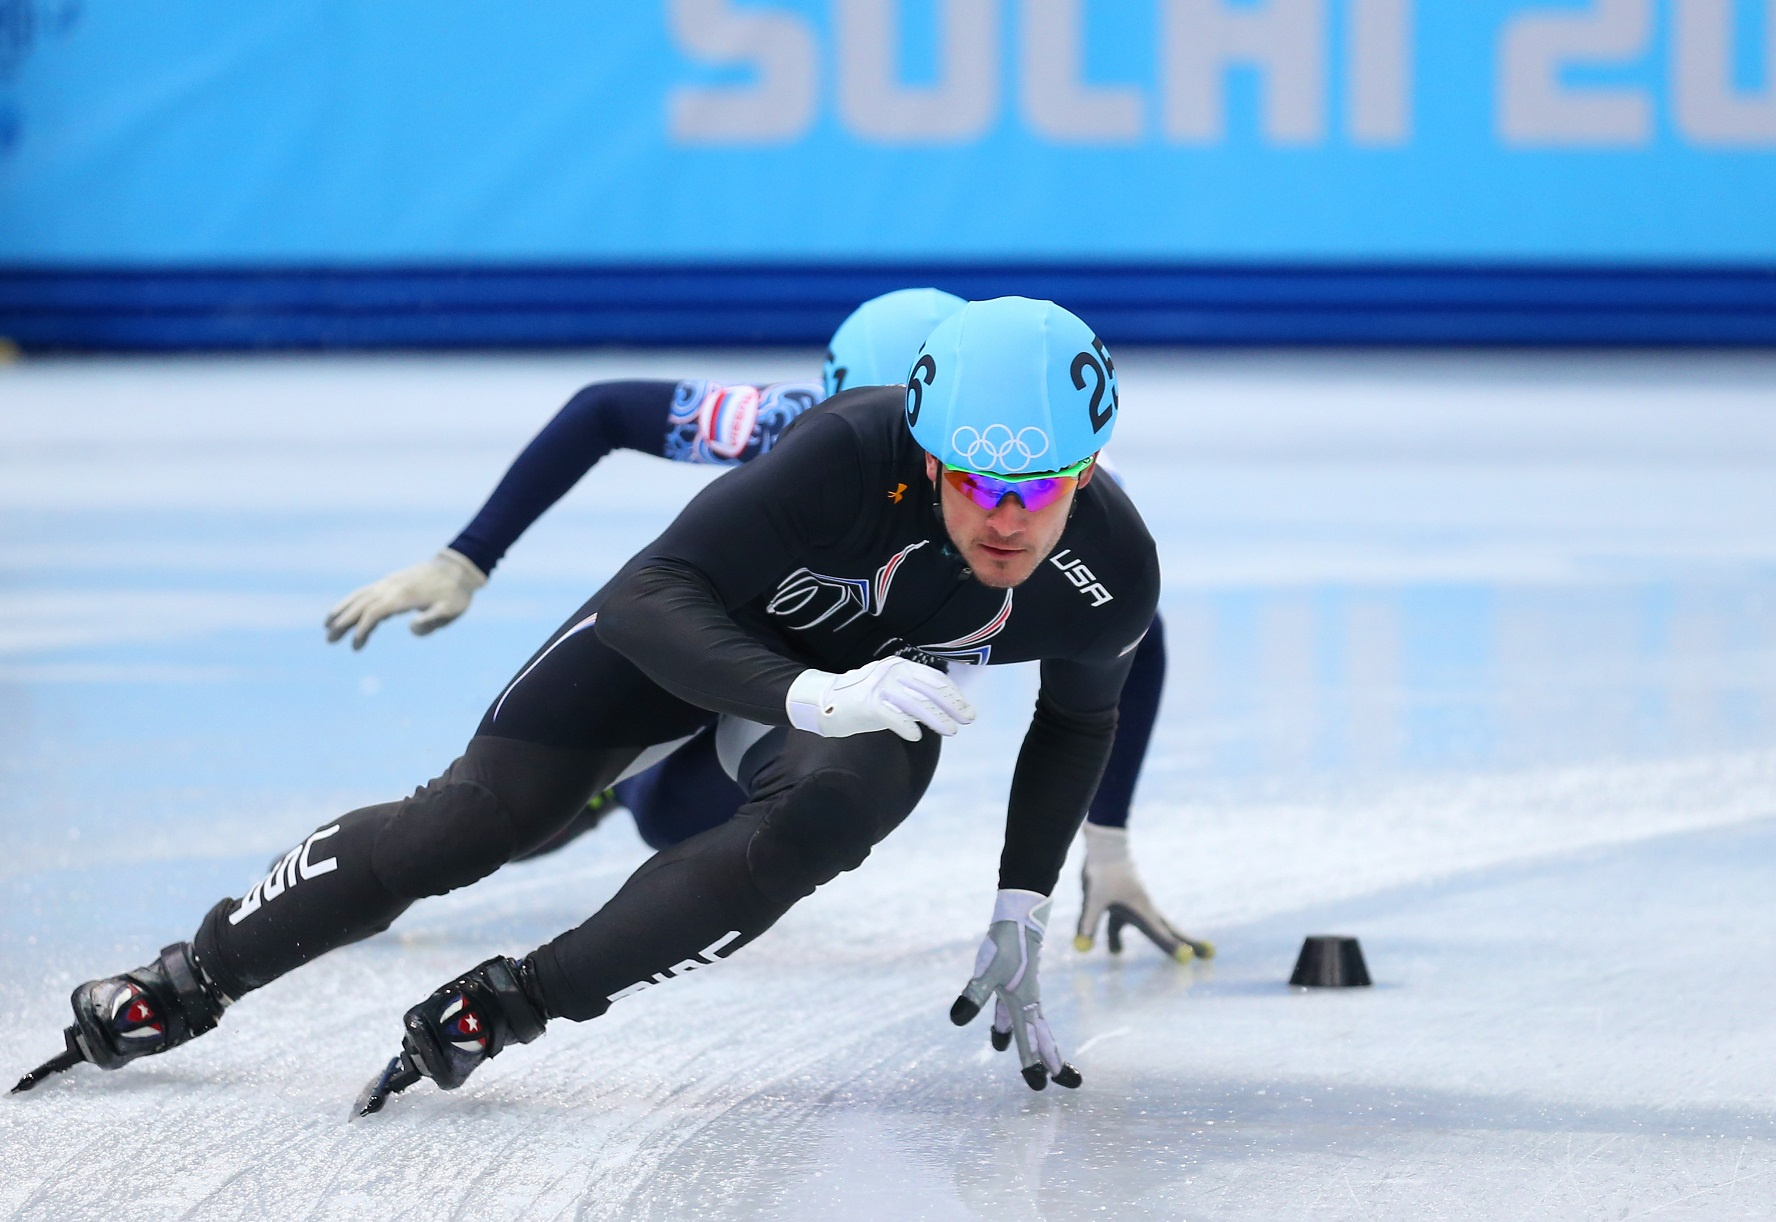 Eddy Alvarez represented the United States in Sochi during the 2014 Winter Olympics. | Matthew Stockman/Getty Images